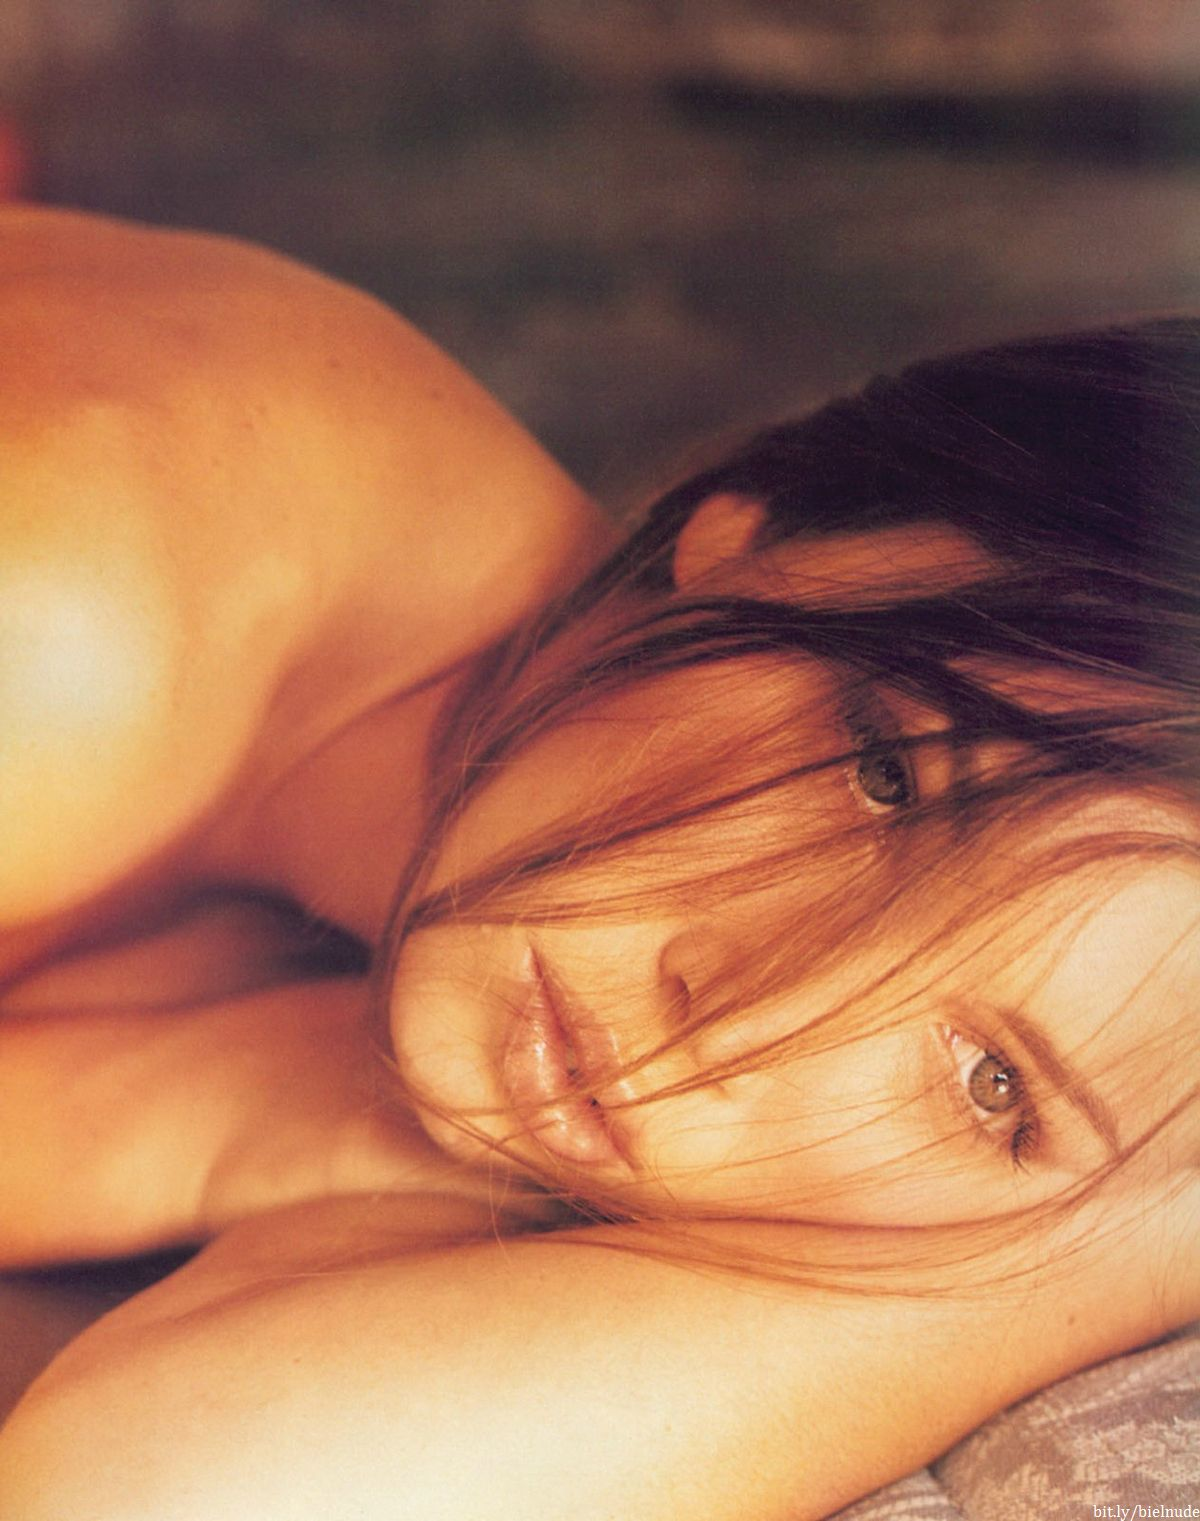 jessica biel nudes exist and we have them here pics